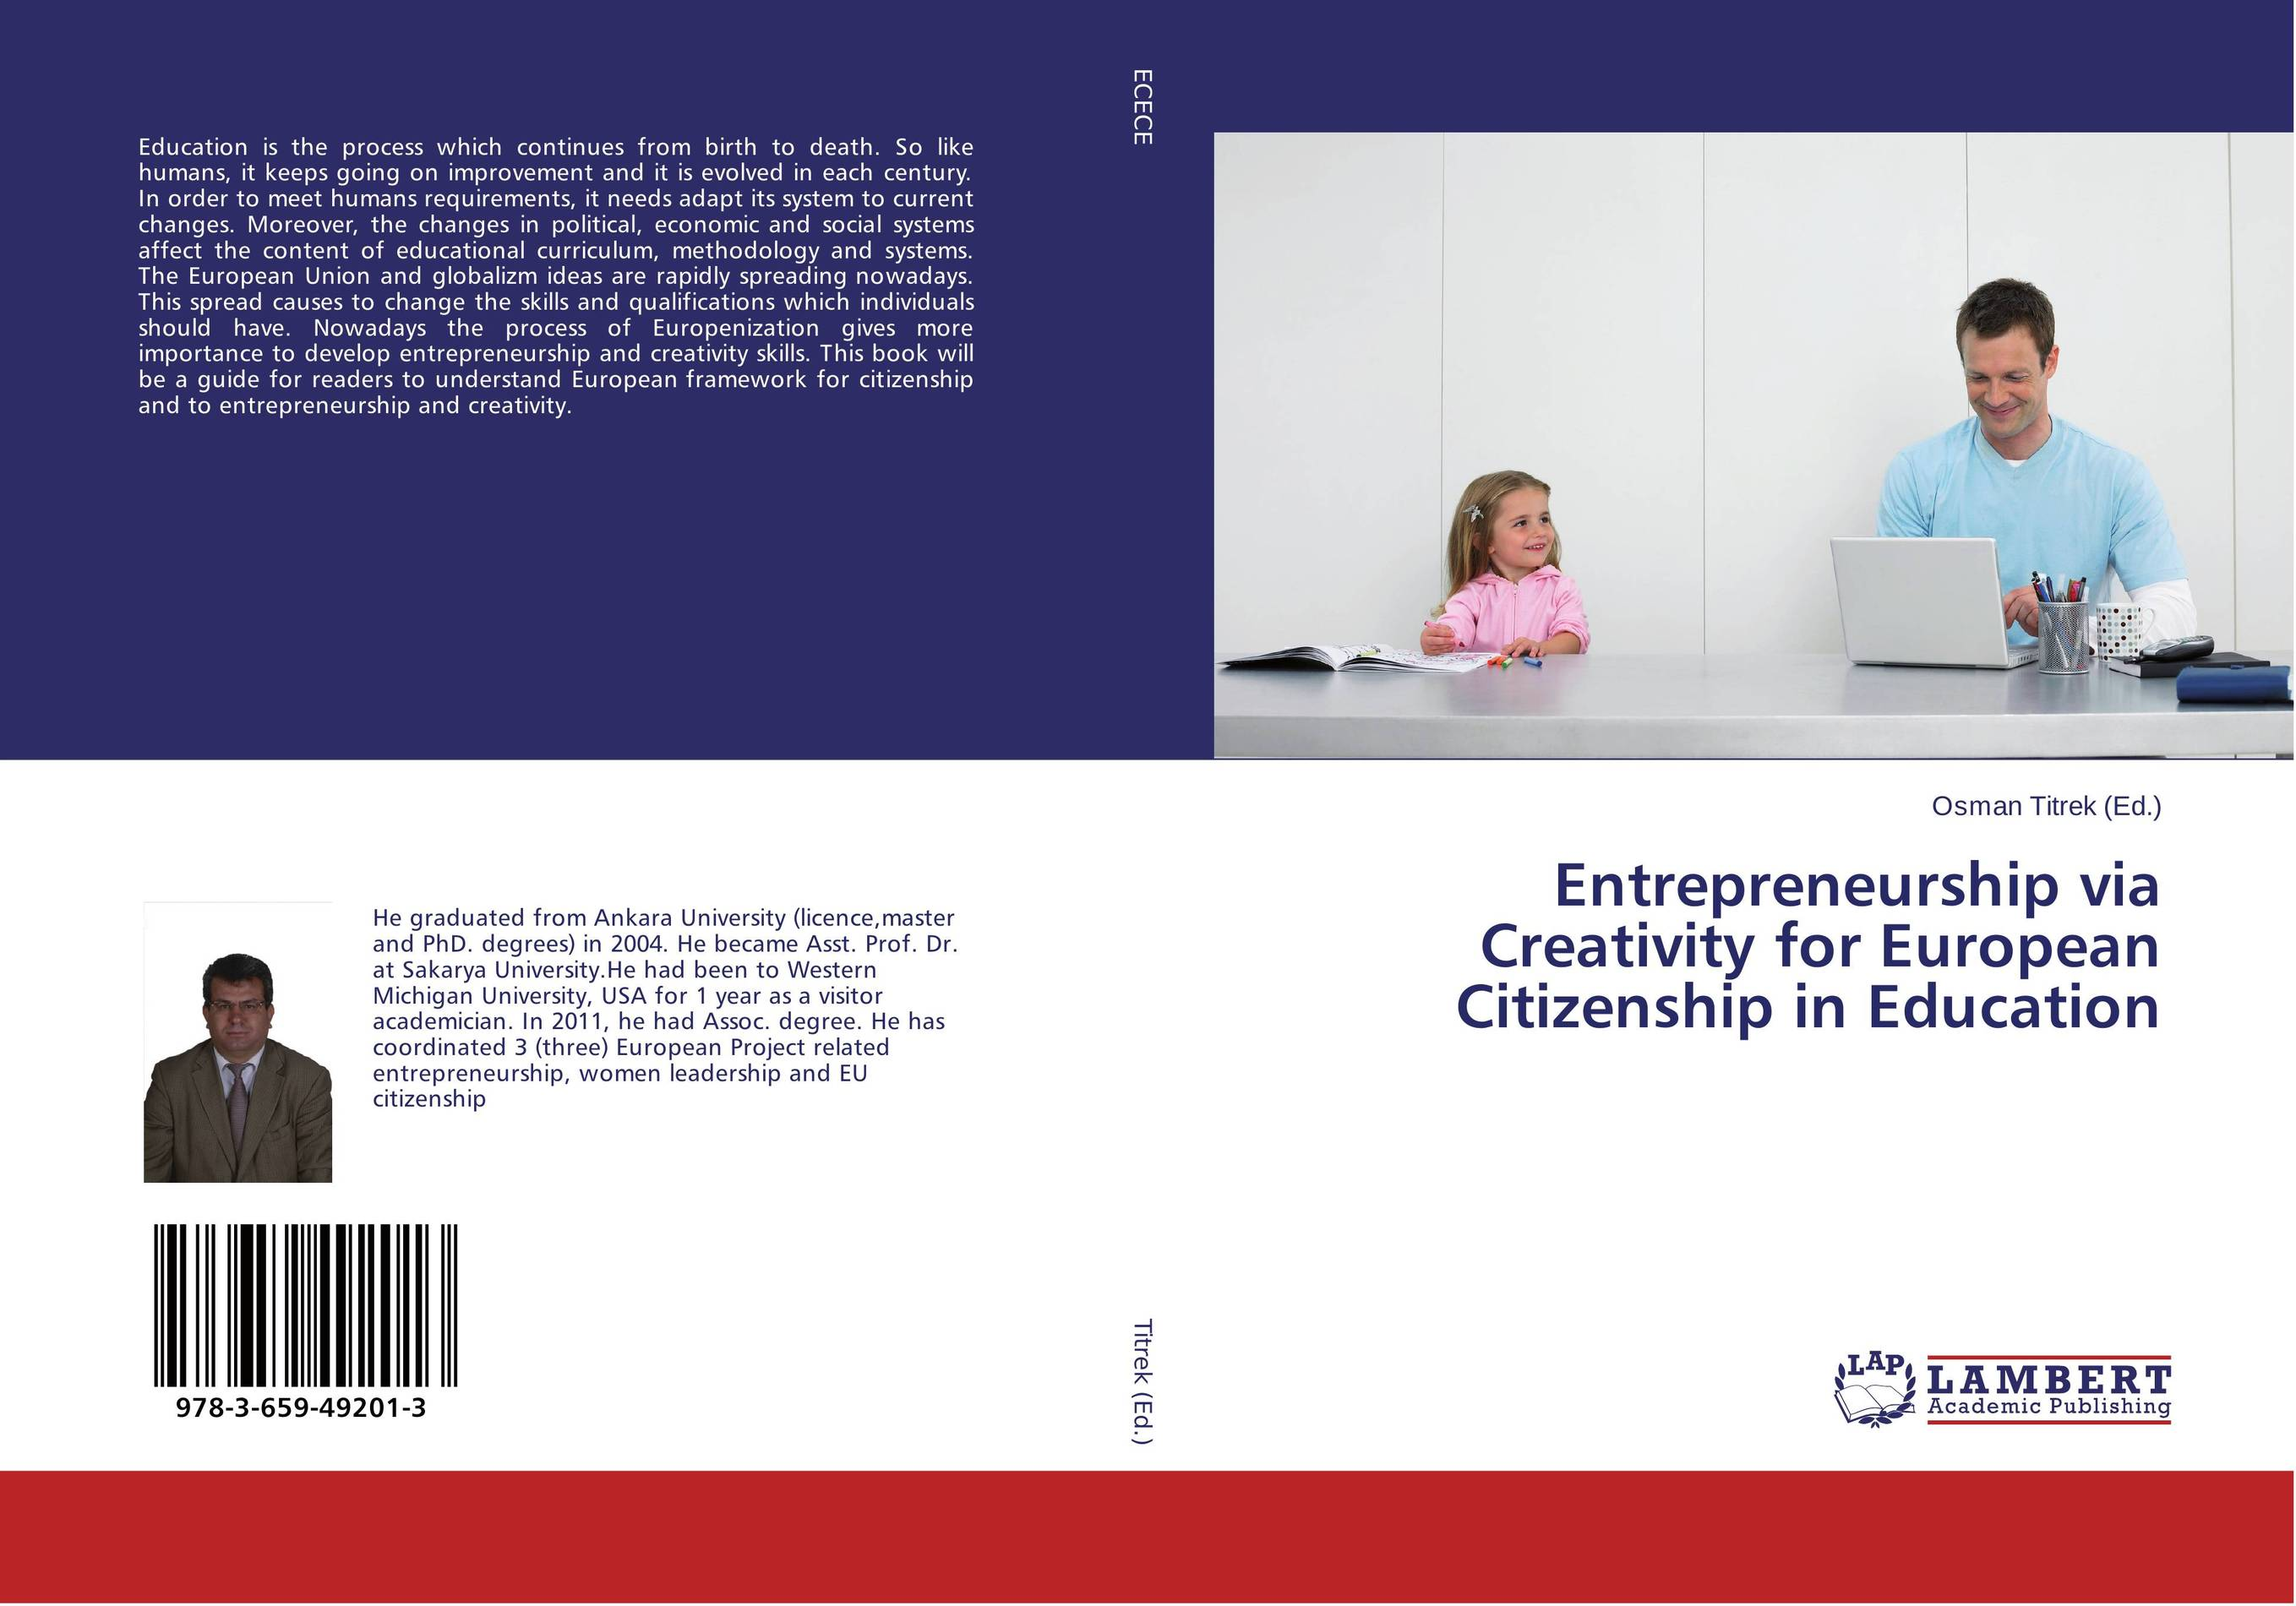 Entrepreneurship via Creativity for European Citizenship in Education cctv 4 port 10 100m poe net switch hub power over ethernet poe